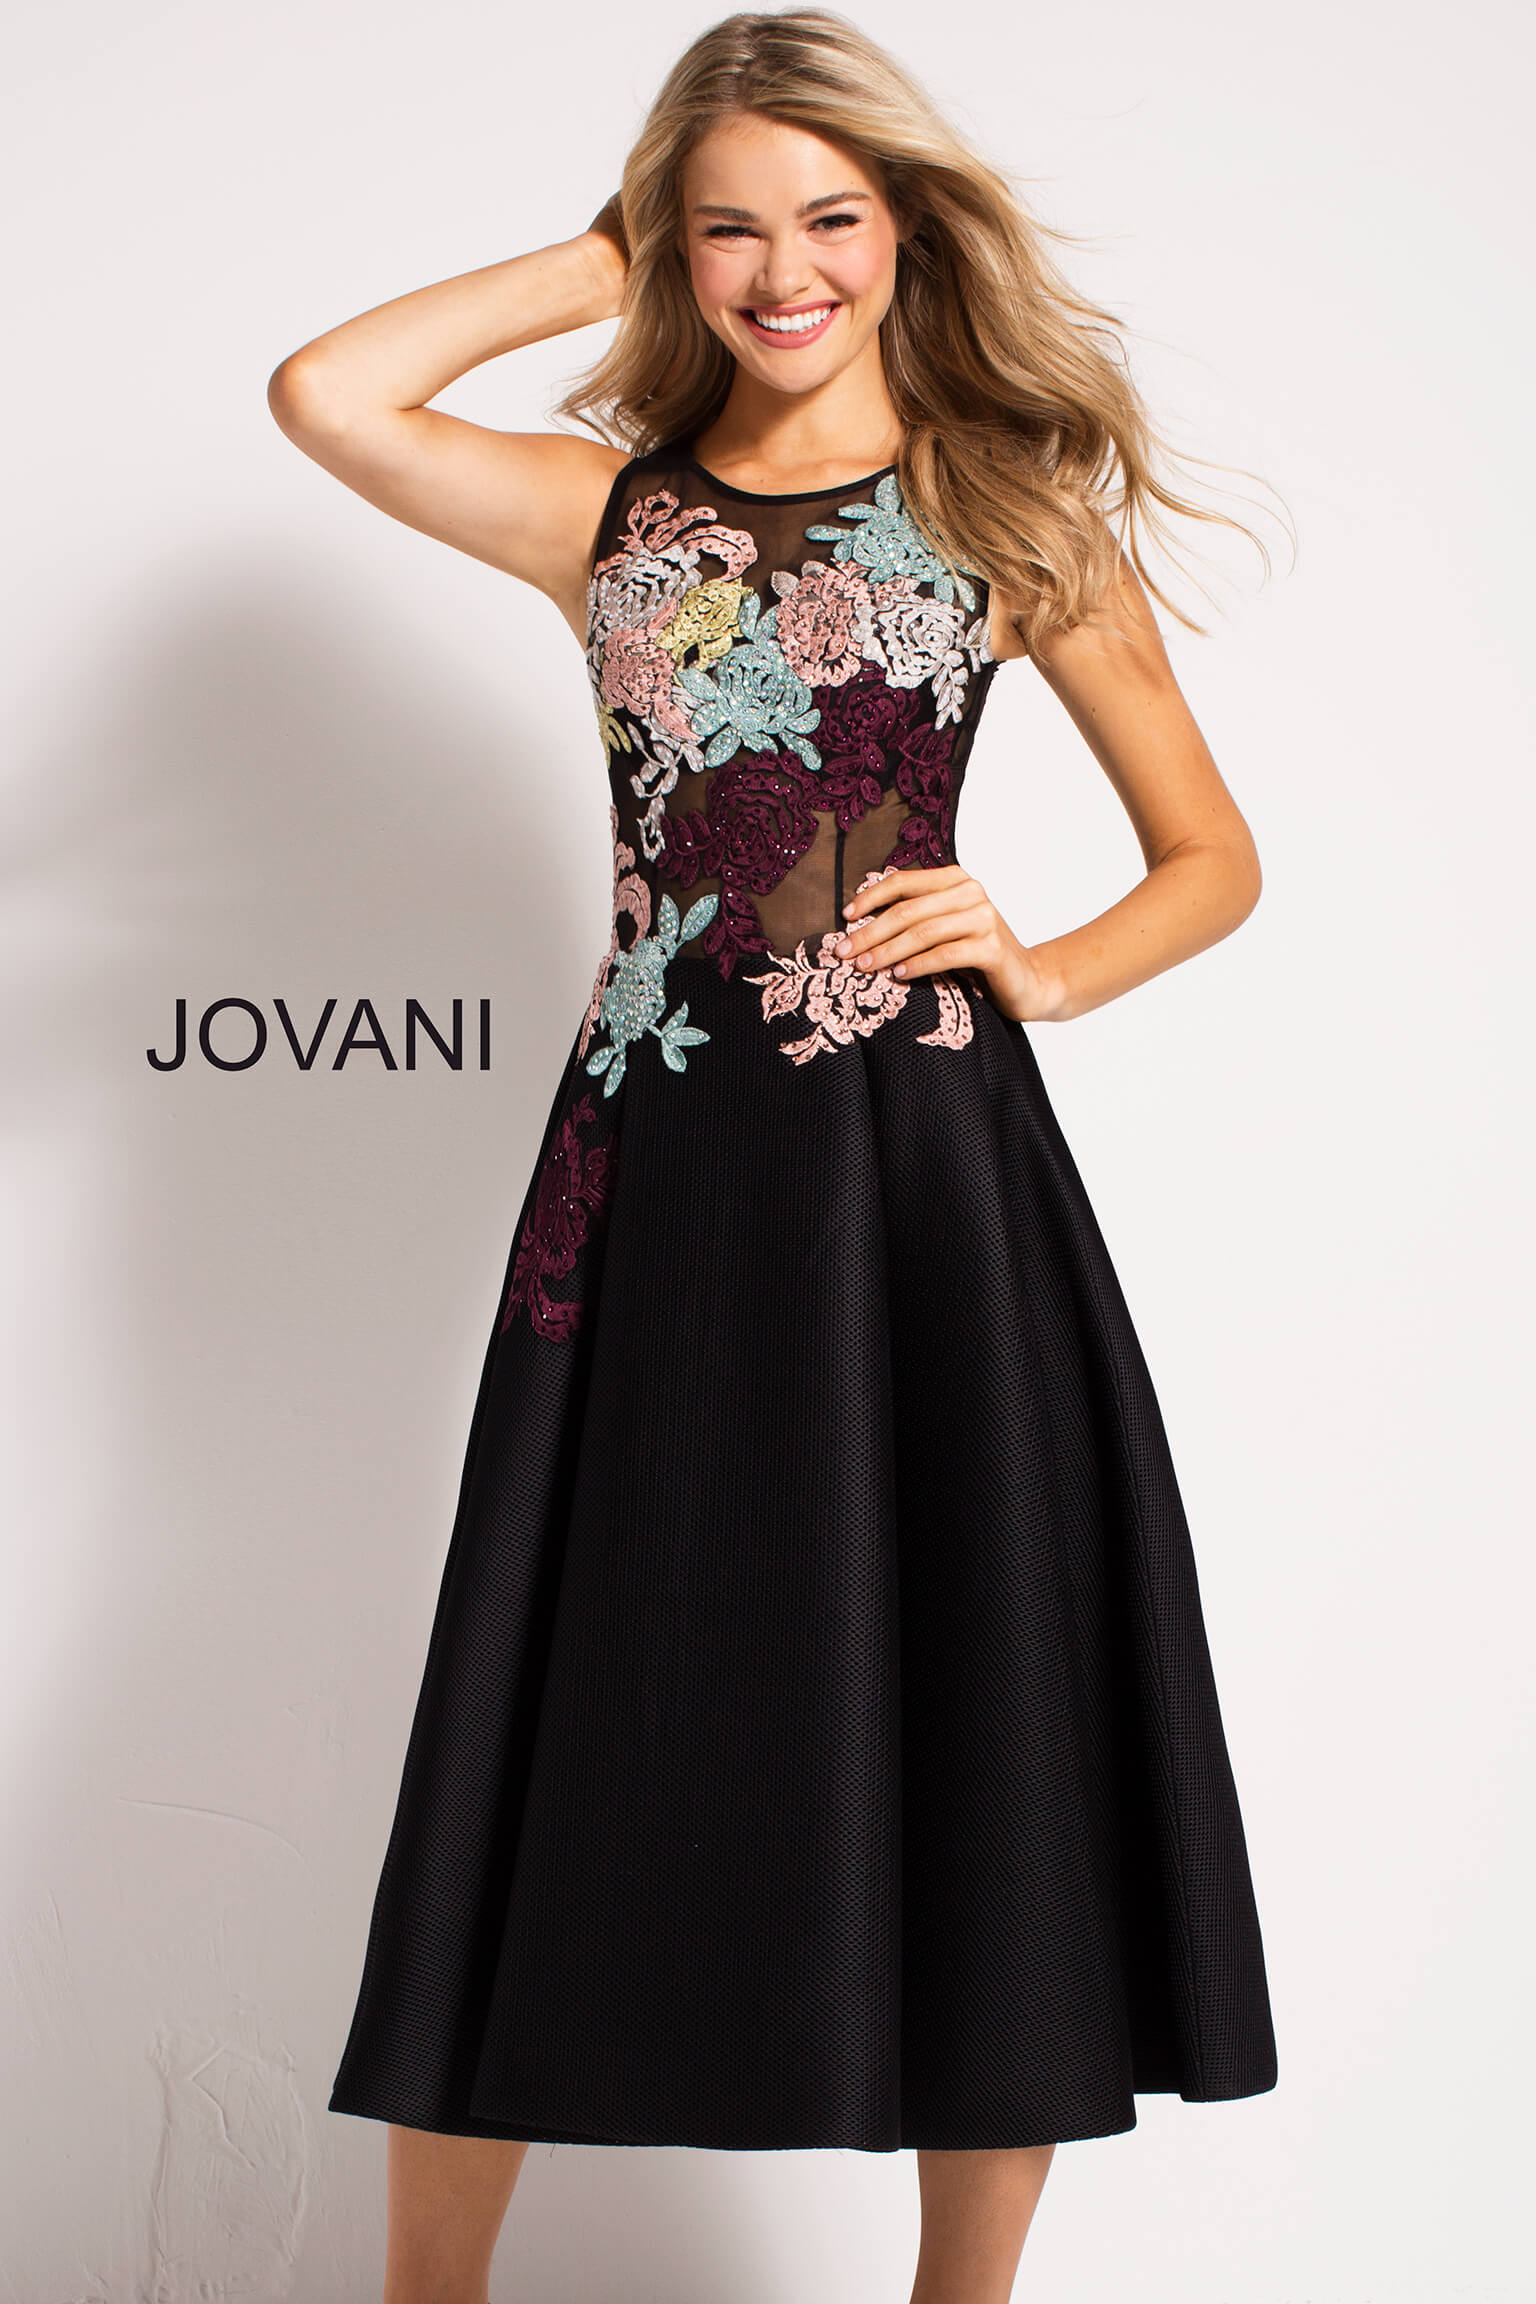 jovani Black Fit and Flare Floral Appliques Contemporary Dress  23695